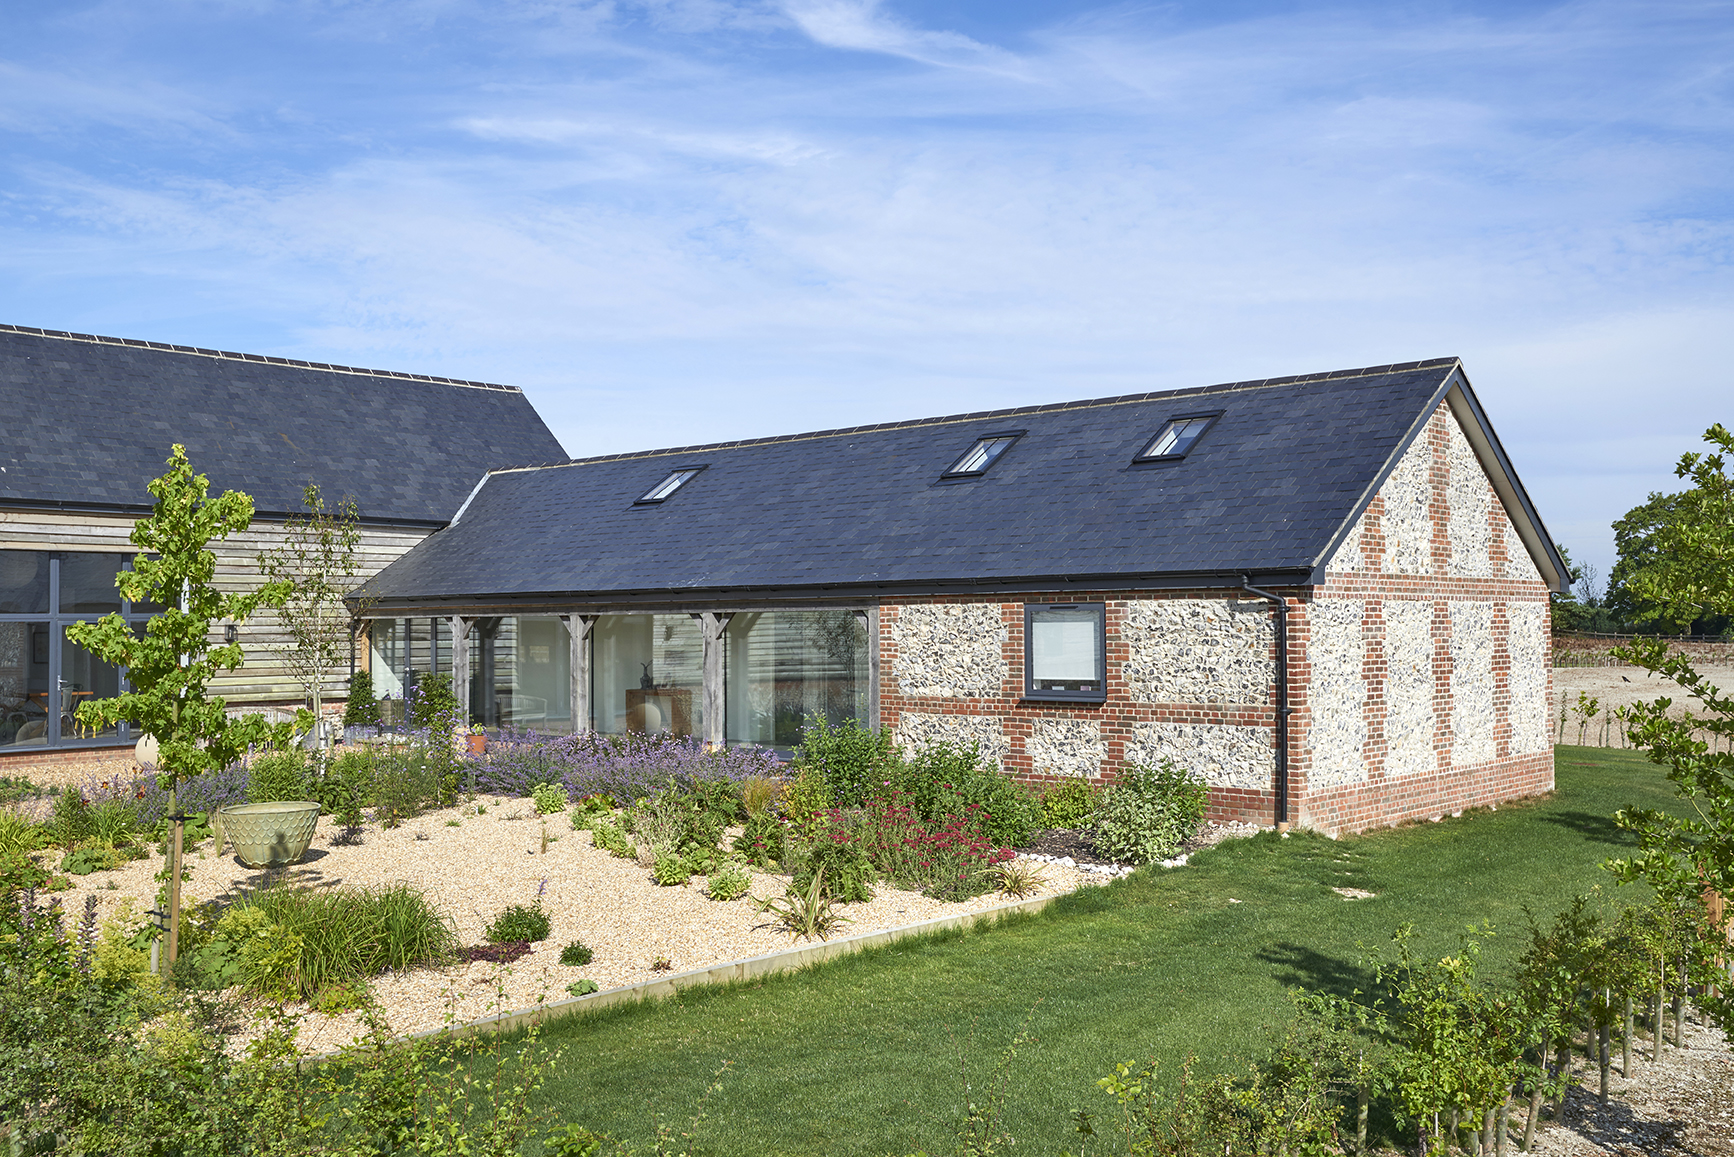 Barn-Conversion-Wiltshire09.jpg